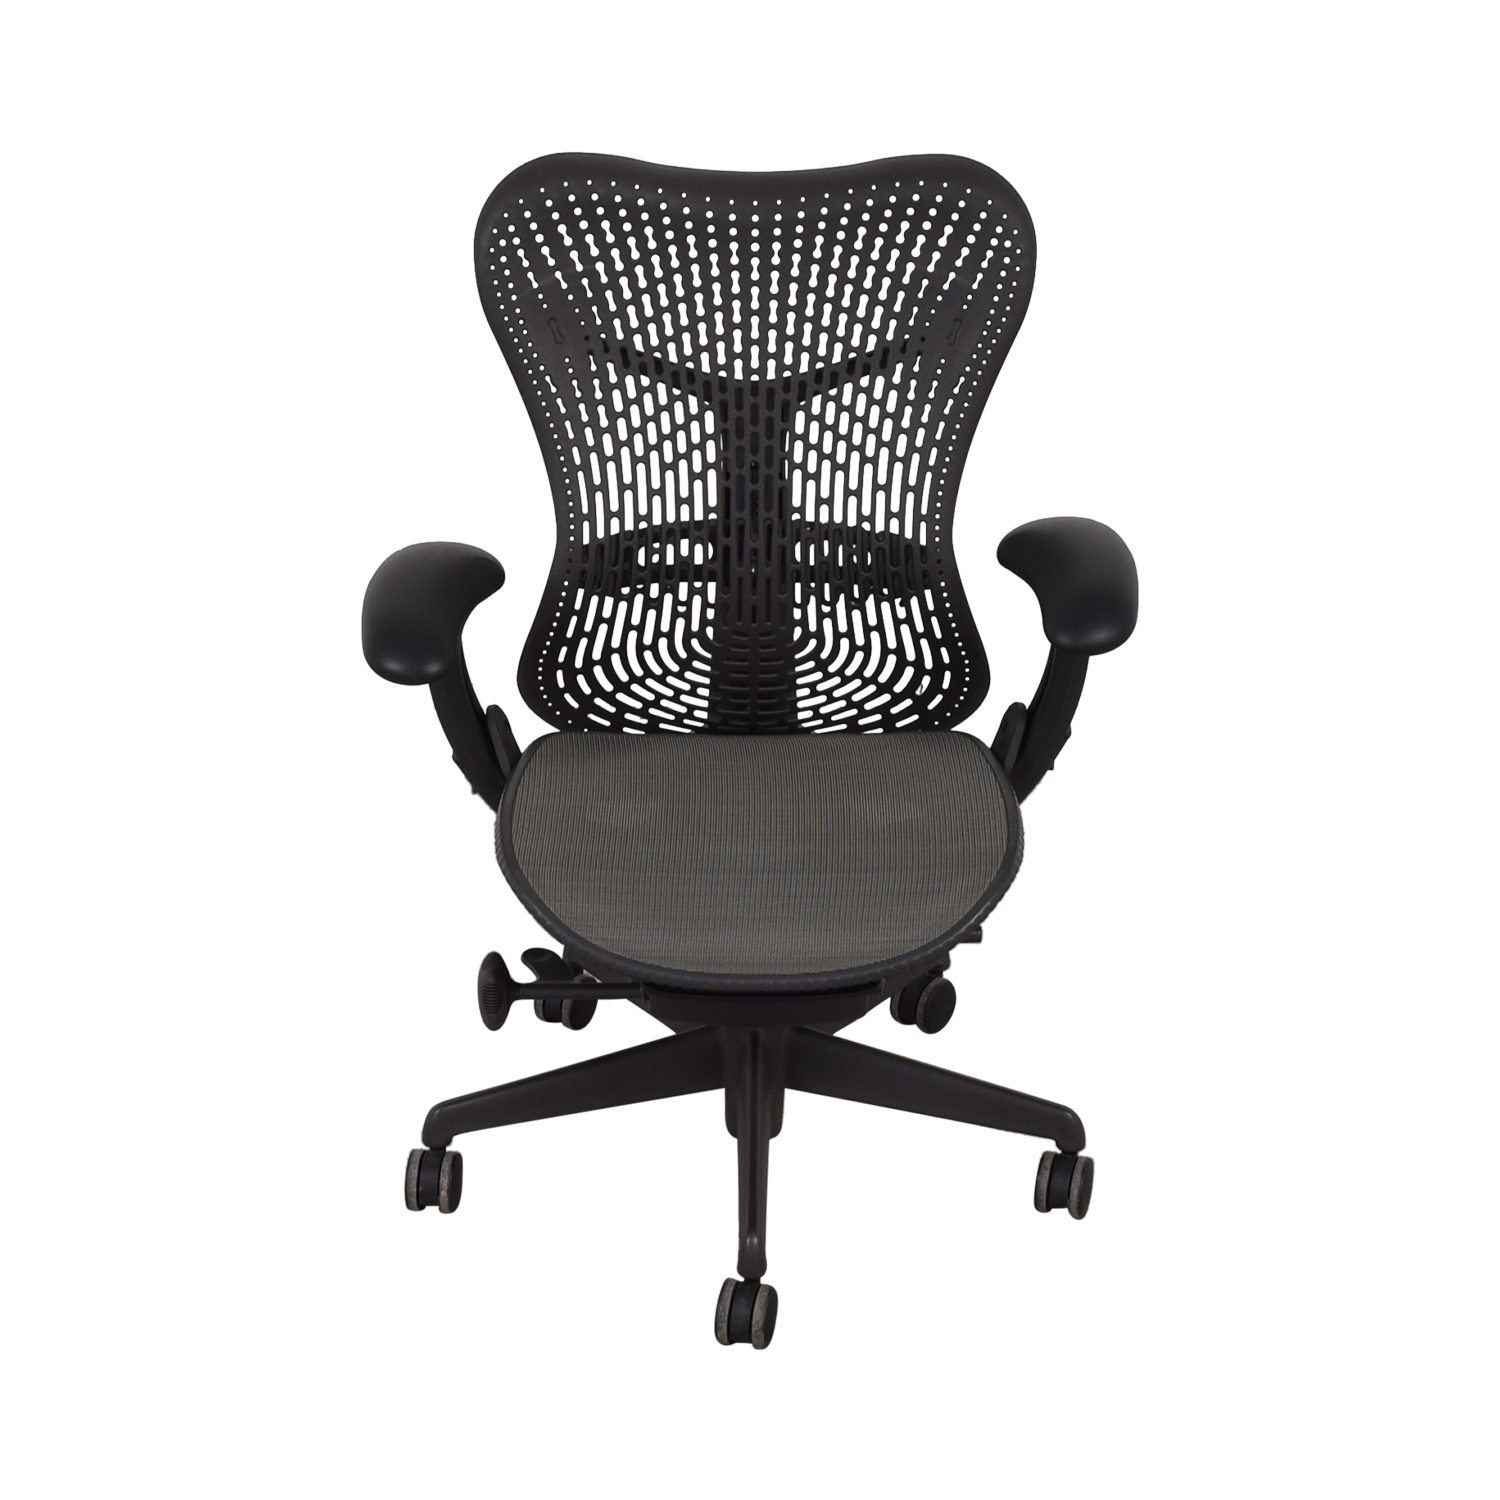 Herman Miller Herman Miller Mirra Office Chair second hand